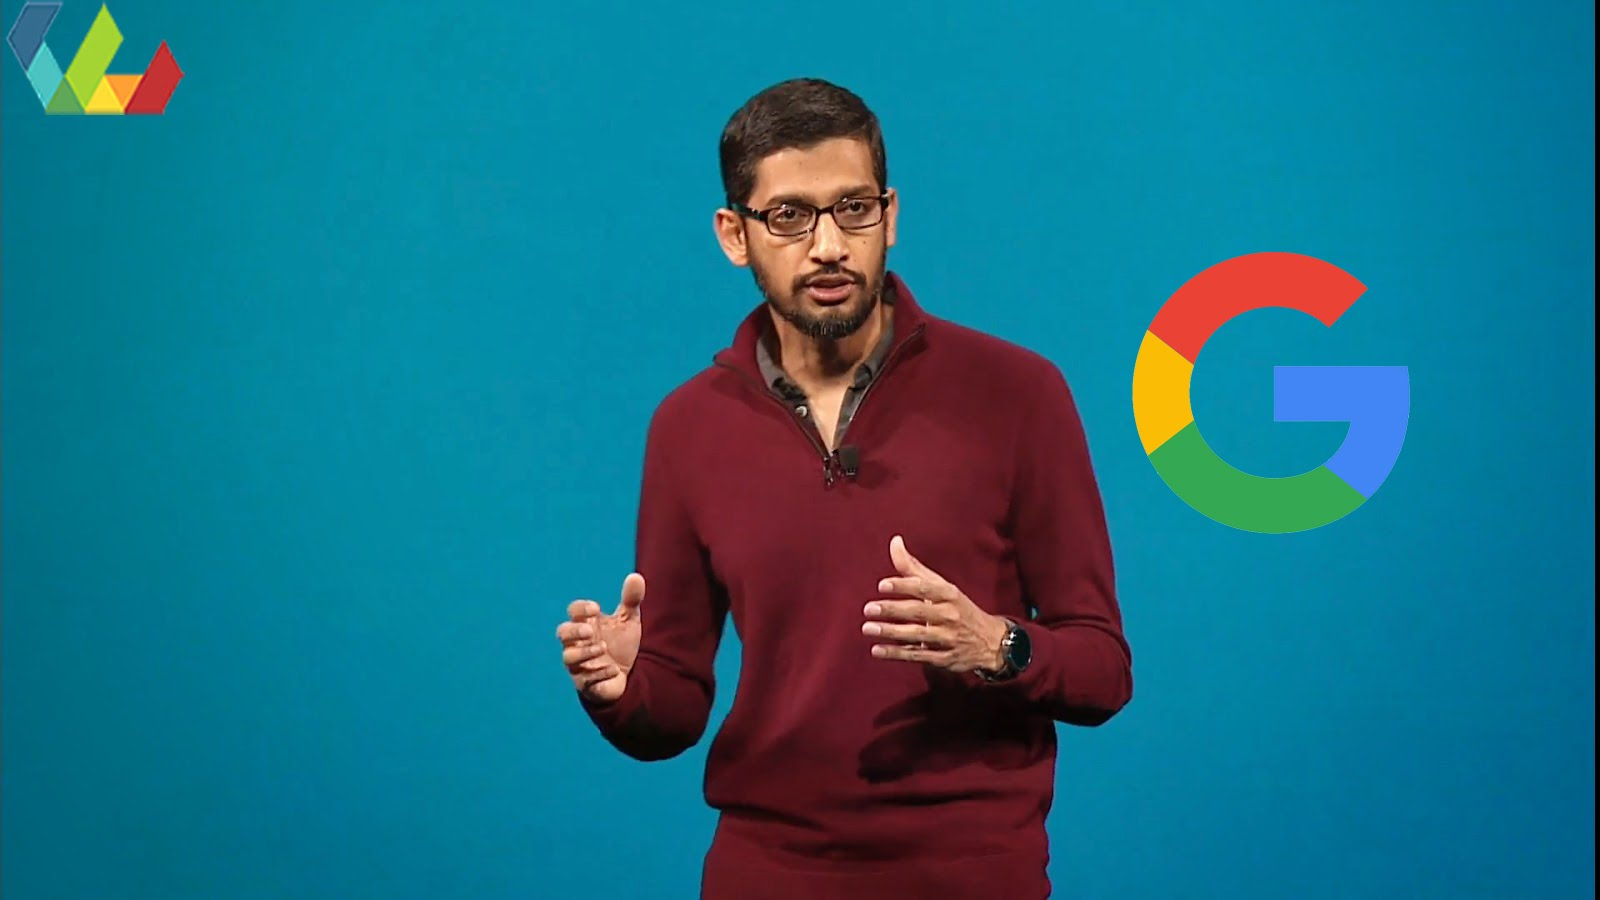 Google boss downplays devices and talks up artificial intelligence